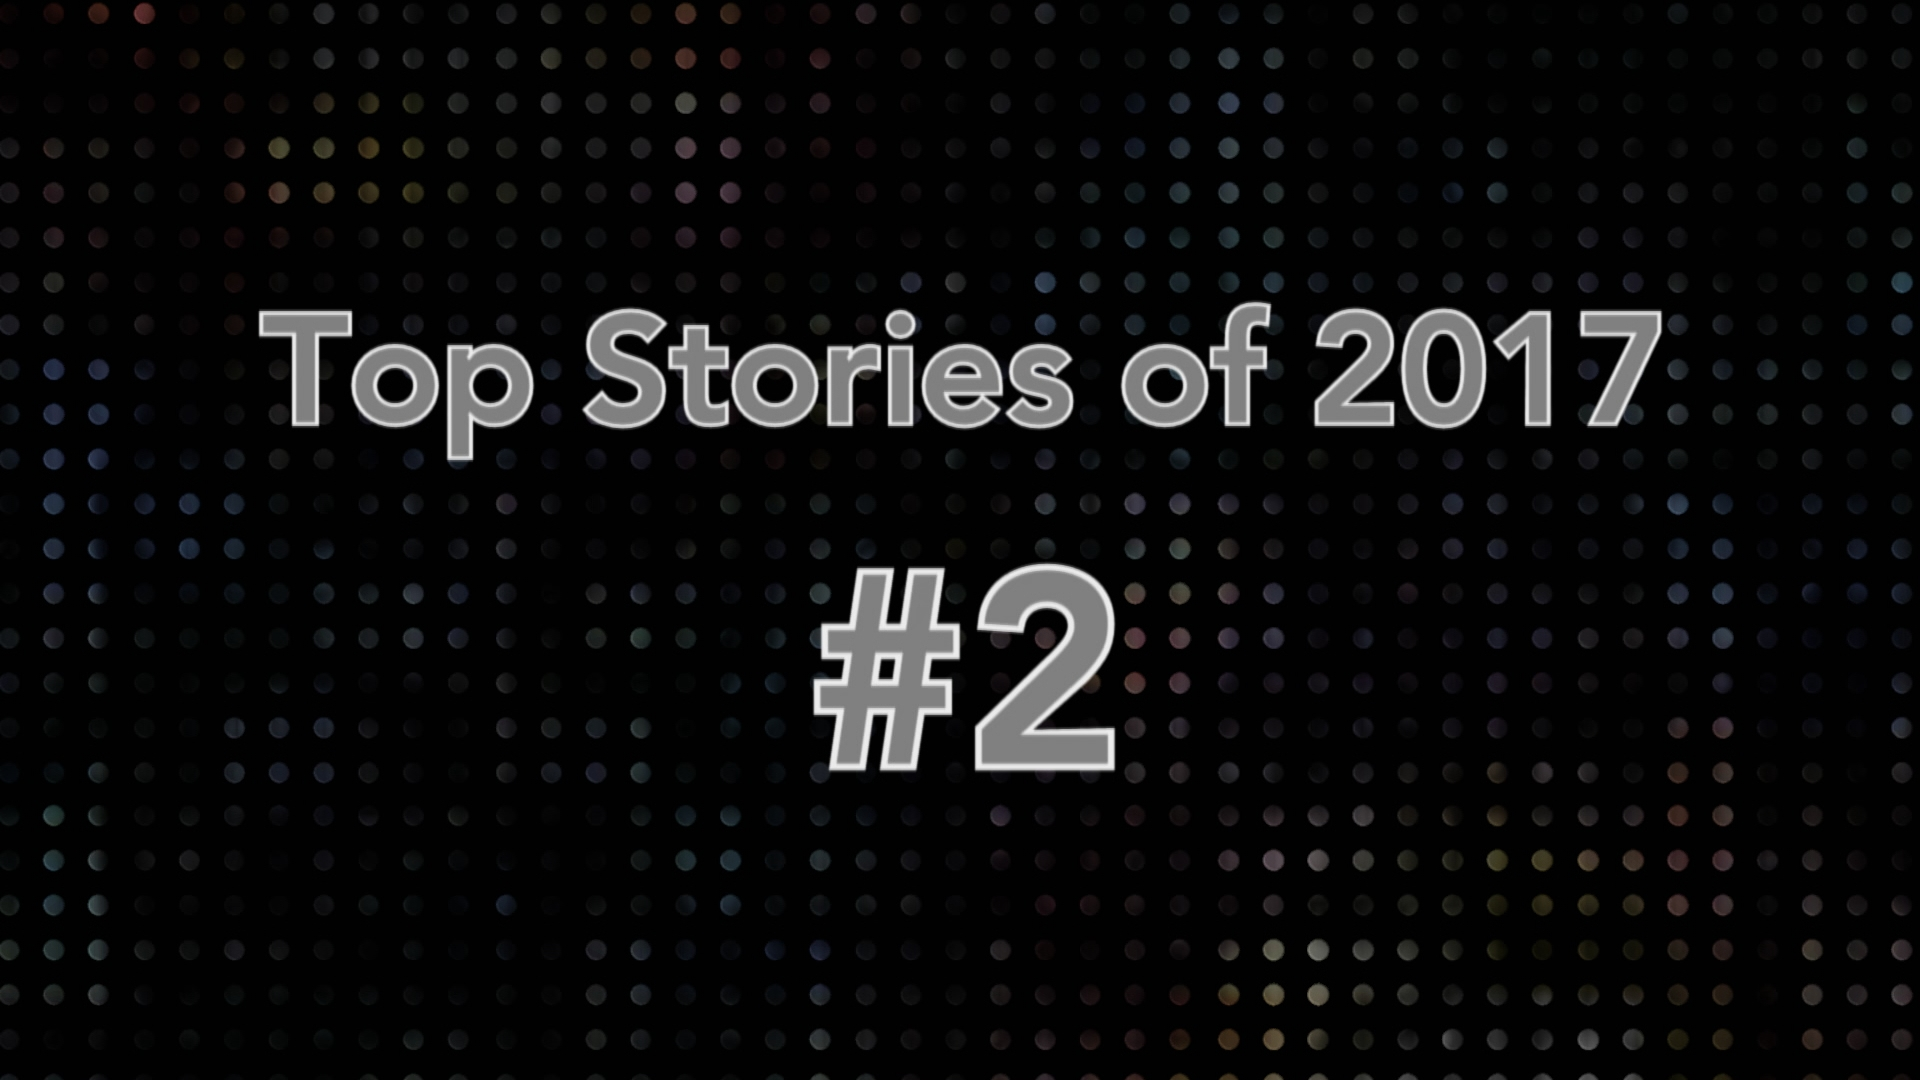 Top Stories of 2017 #2